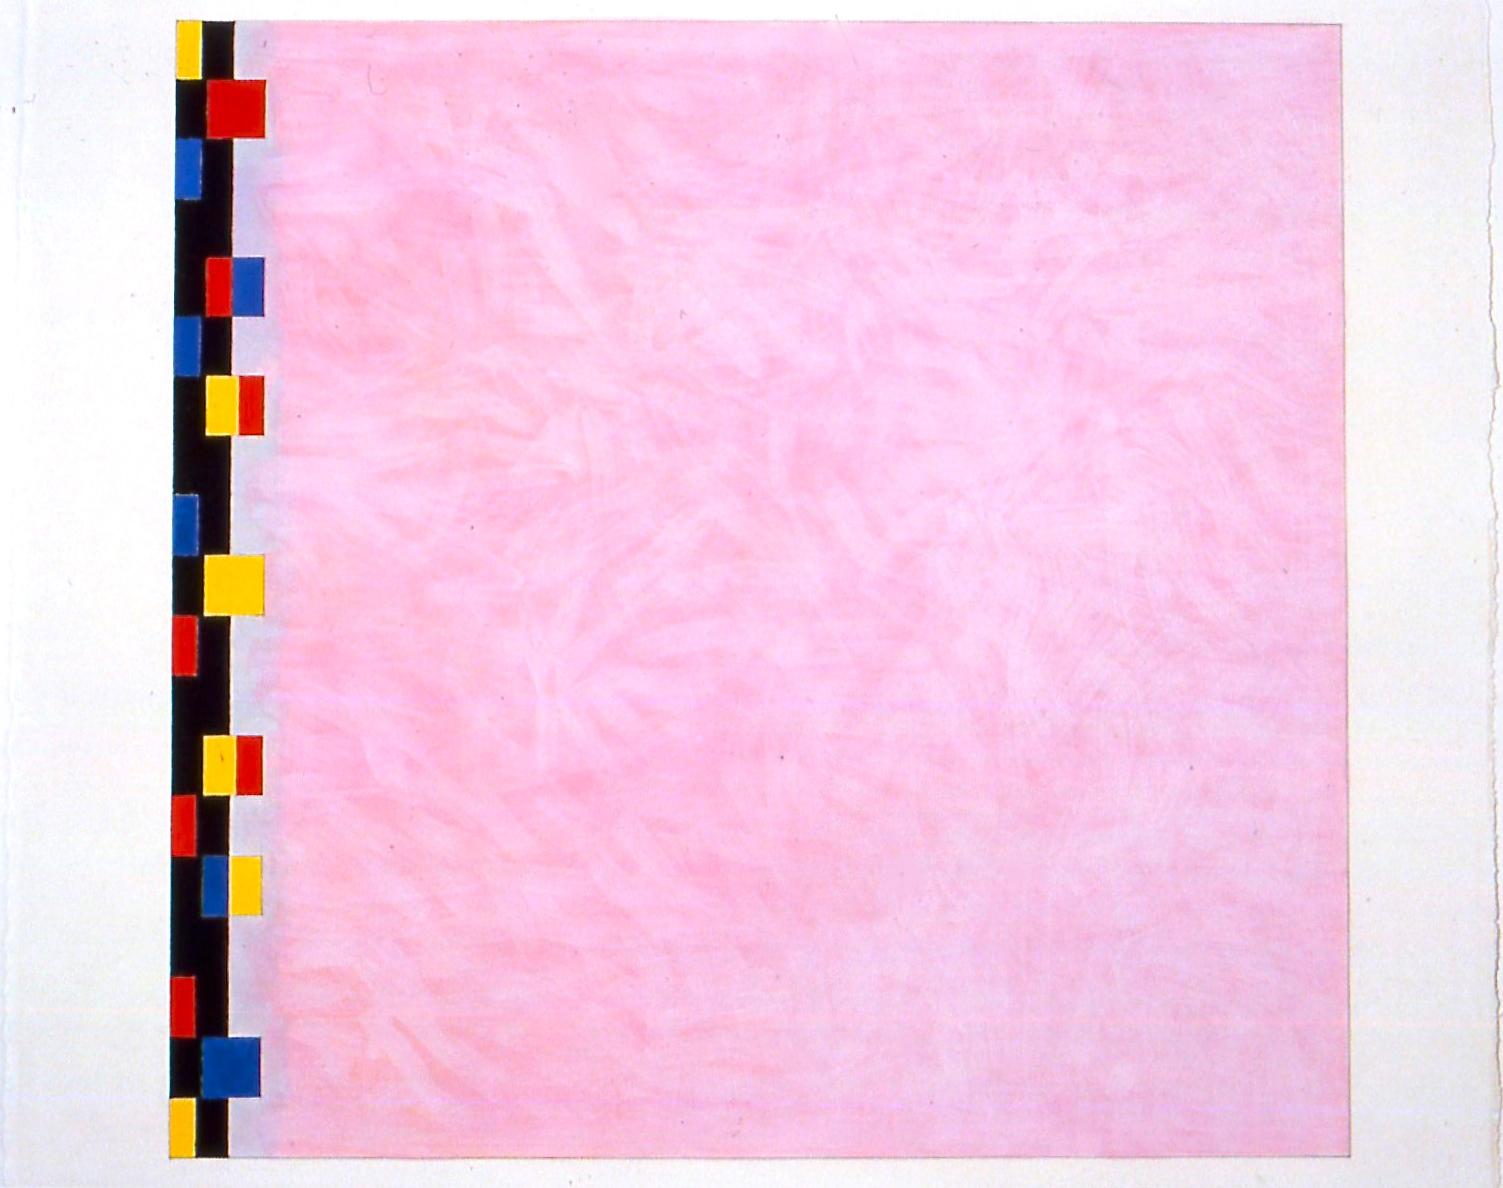 """Untitled (PG5), 2002, gouache on paper, 21 3/16""""x22 1/2"""" (image), 23""""x29""""(paper)"""